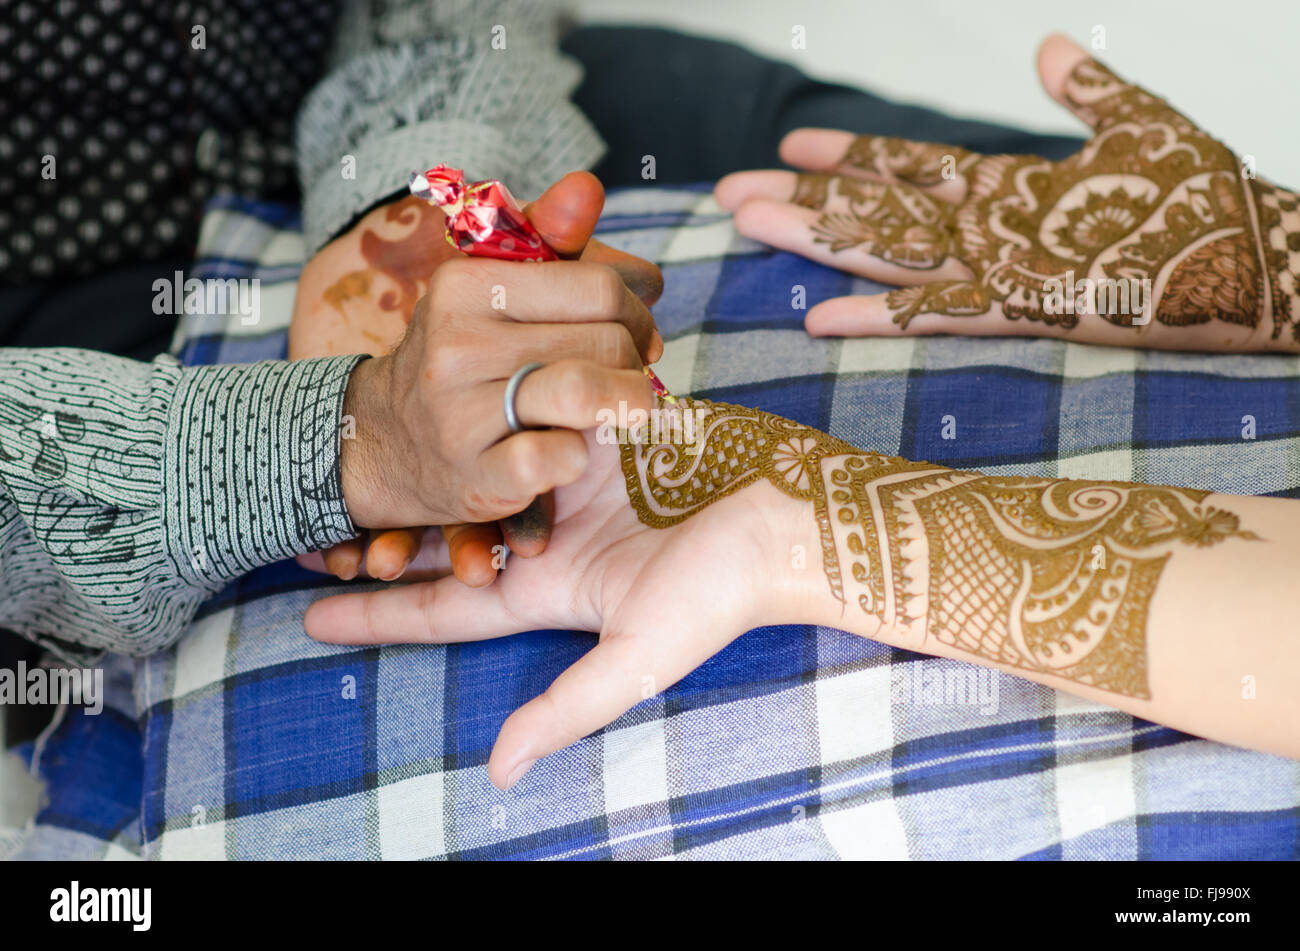 Image detail of henna being applied to hand. - Stock Image